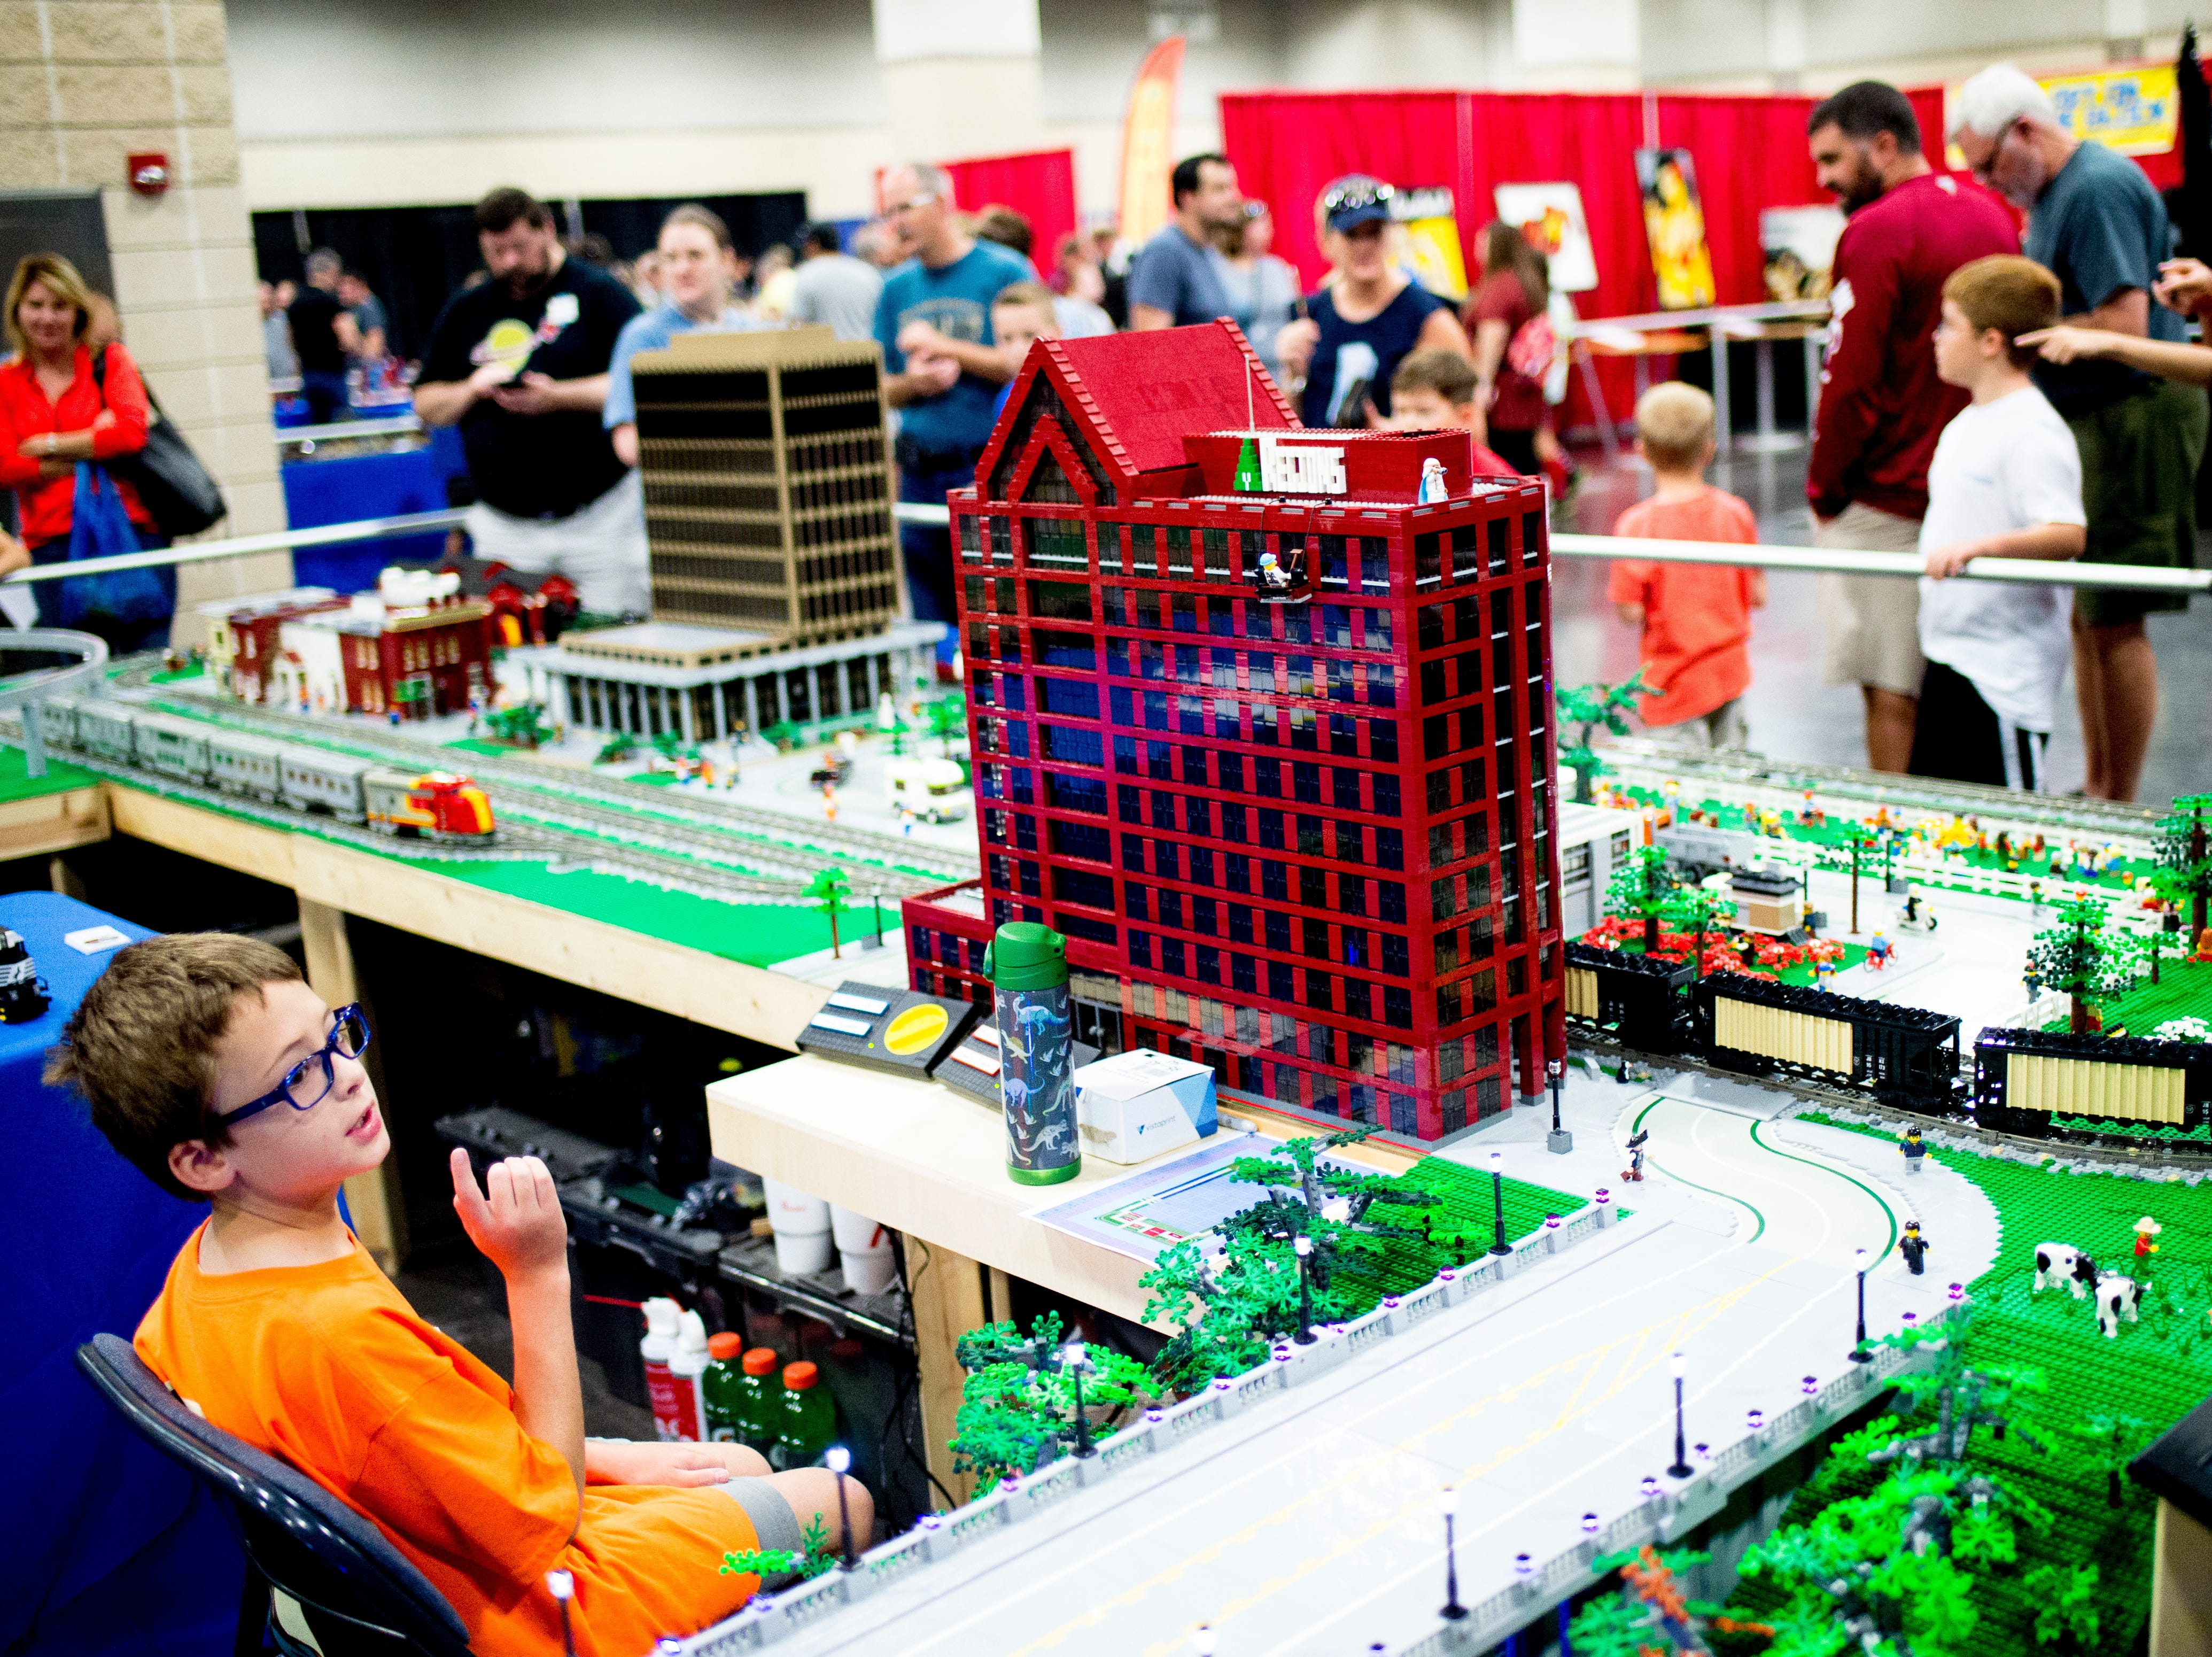 The Lego city display at the BrickUniverse Knoxville LEGO Fan Expo in the Knoxville Convention Center in Knoxville, Tennessee on Saturday, August 25, 2018. Life-sized LEGO displays, over 40 world landmarks build to-scale from LEGO as well as castles, trains, and cities and other creations were on display.